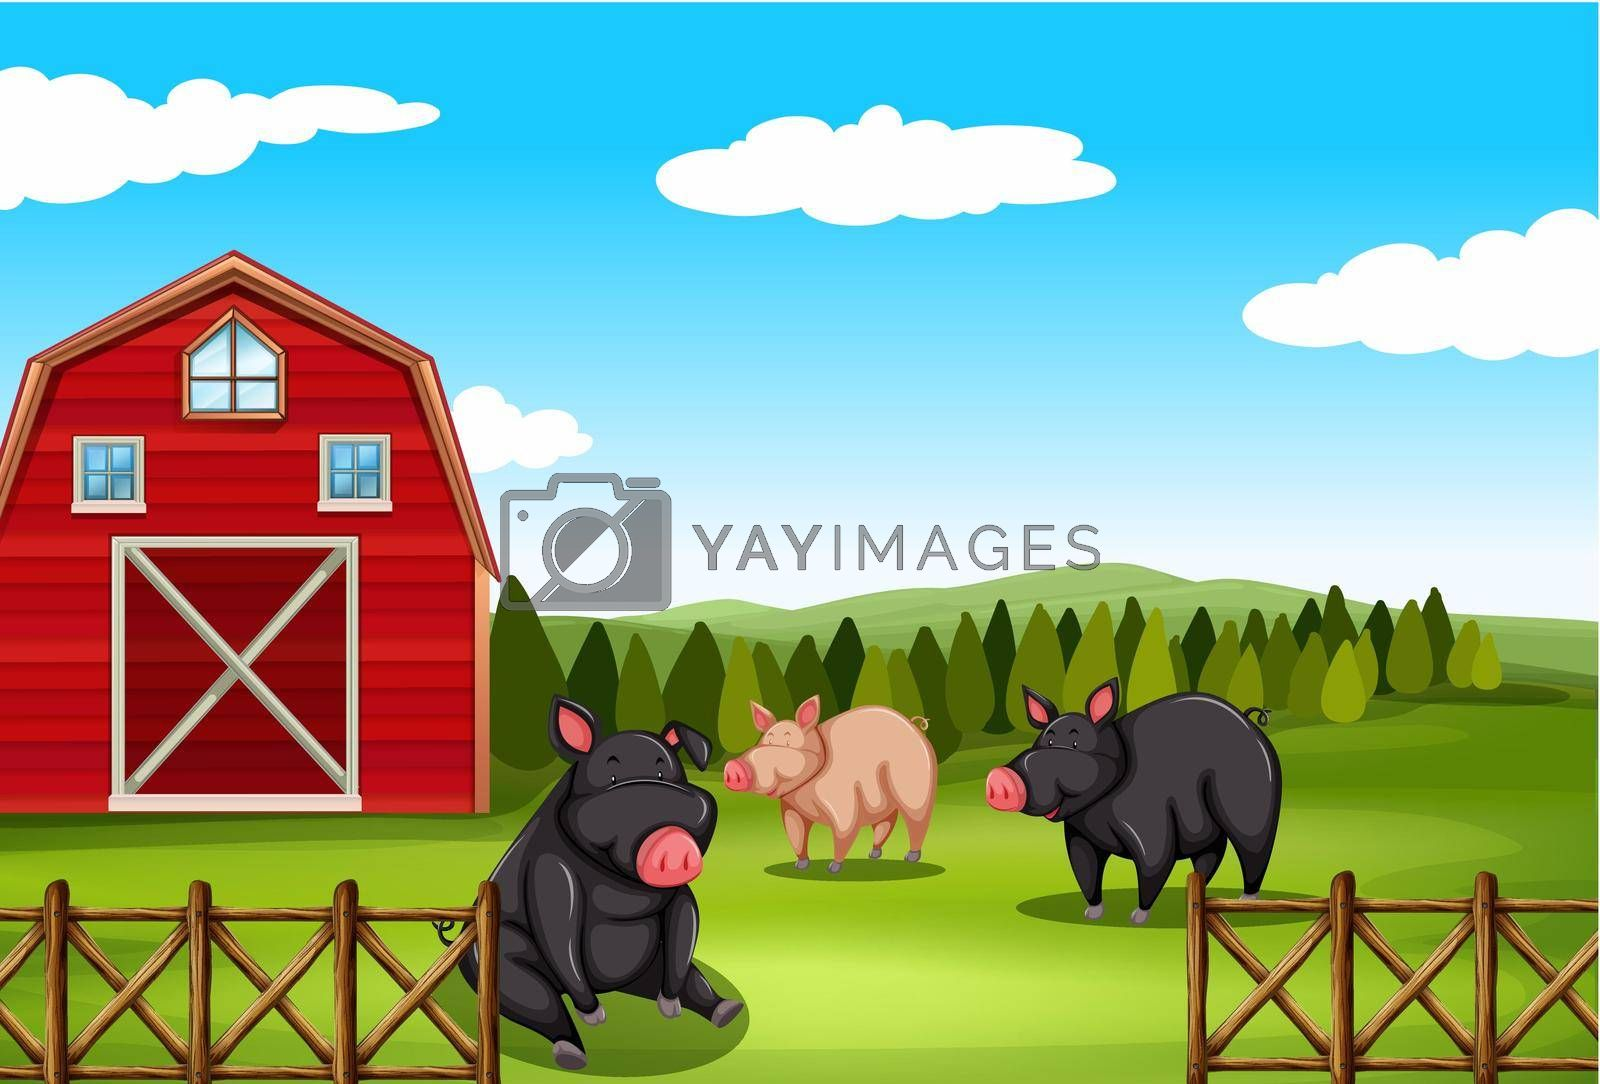 Royalty free image of Pigs in a farm by iimages